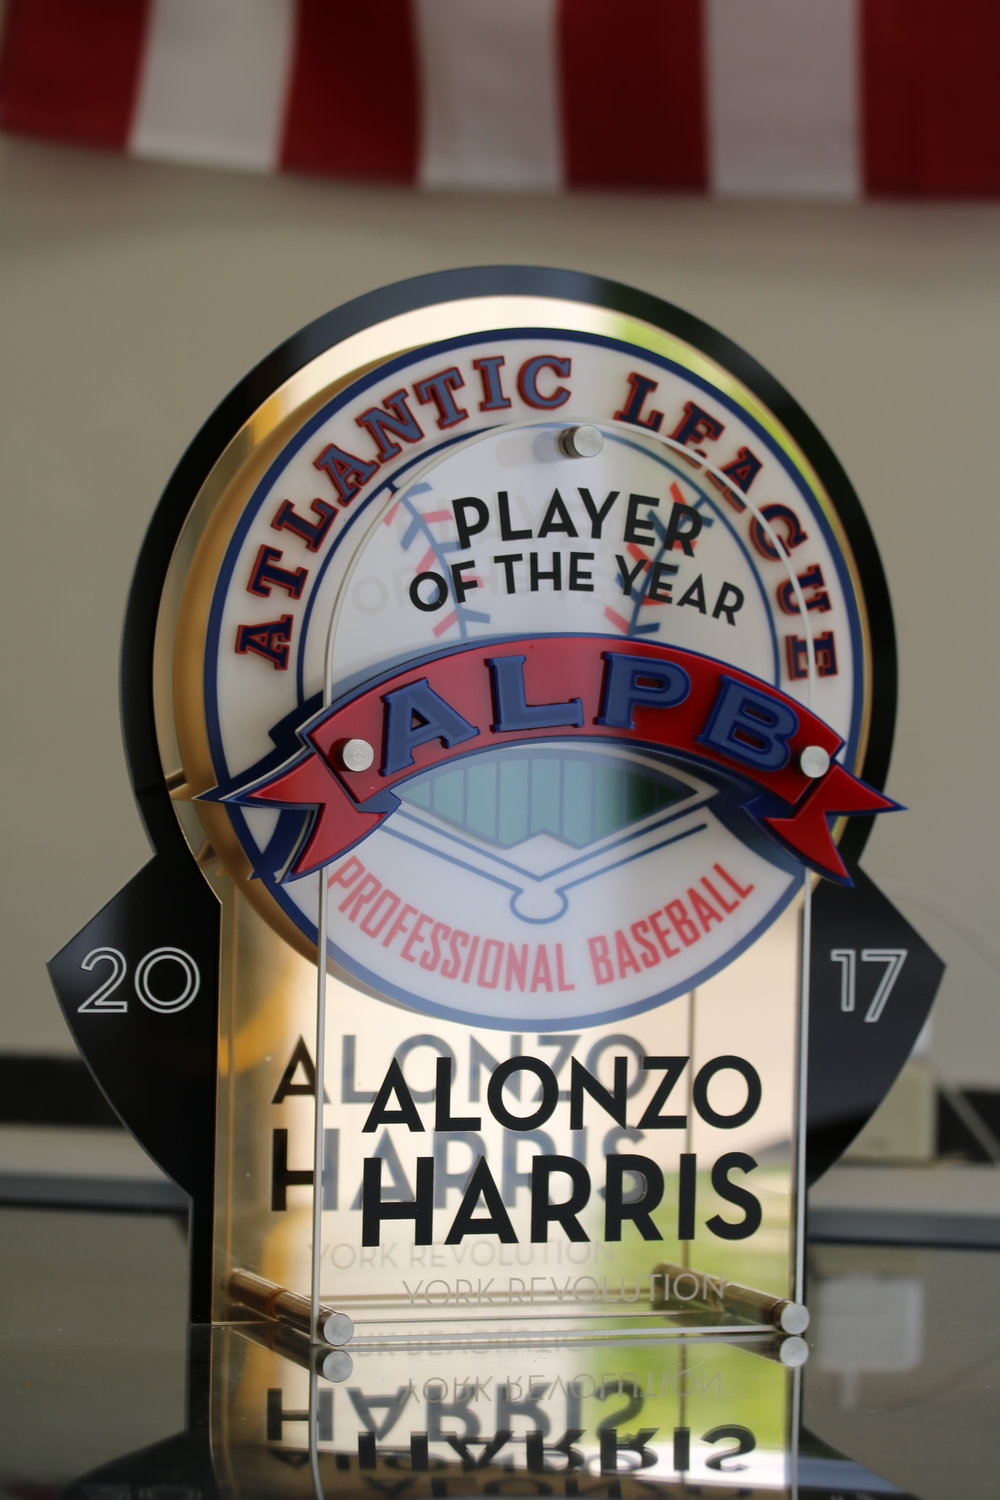 Atlantic League of Professional Baseball - Player of the Year Award  Contact us for pricing information.